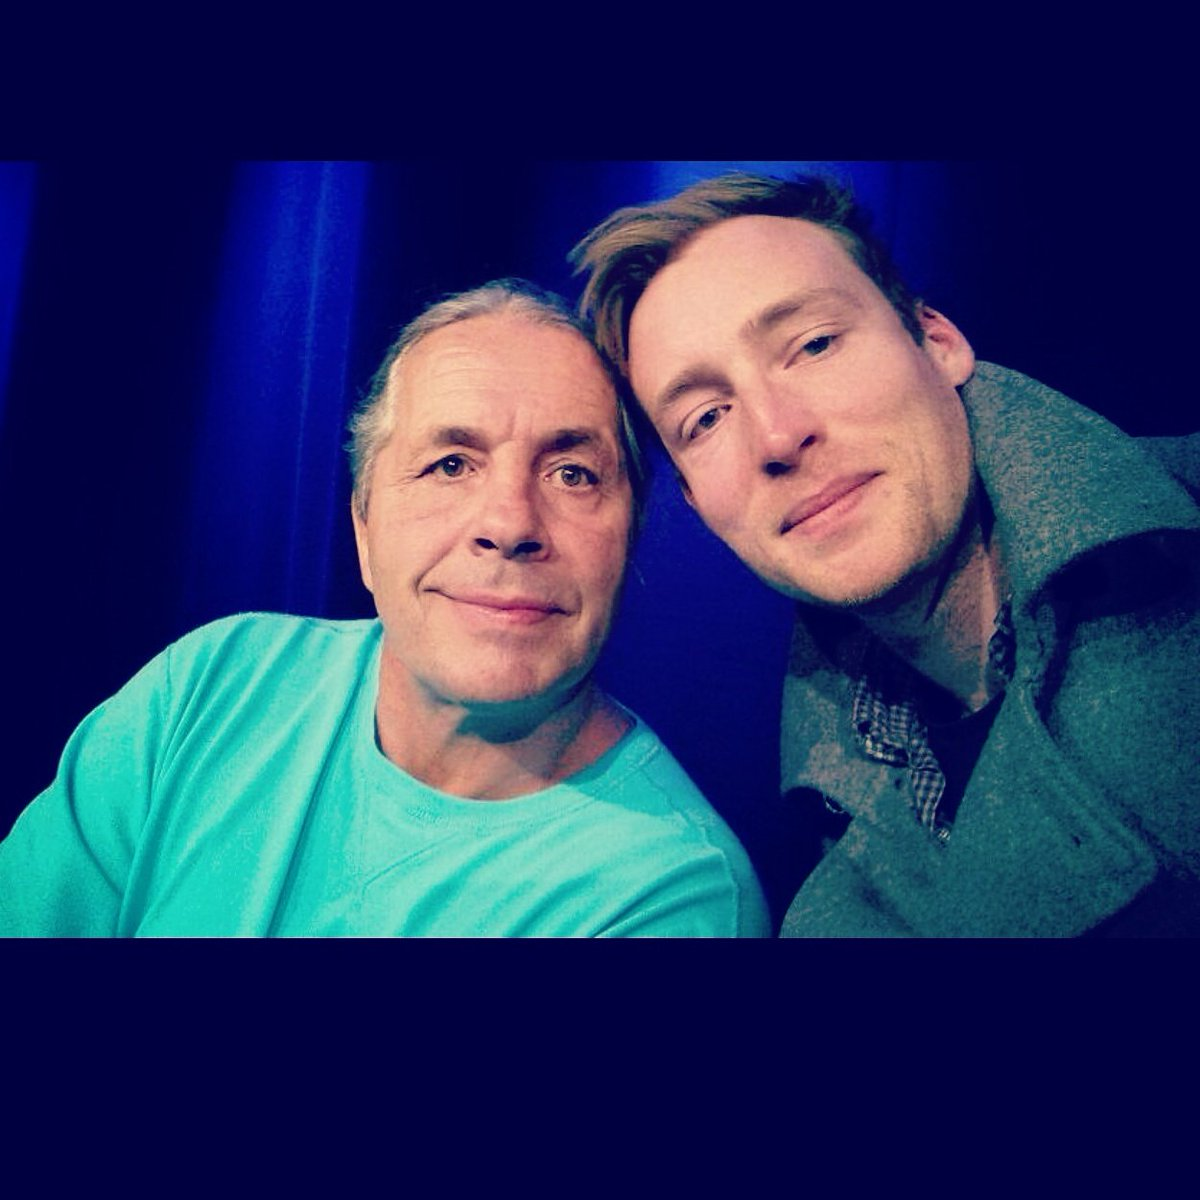 #TBThursday my first ever selfie was, a few years ago with none other than @BretHart #isWasAndEverWillBe https://t.co/tGTgFhz3H4